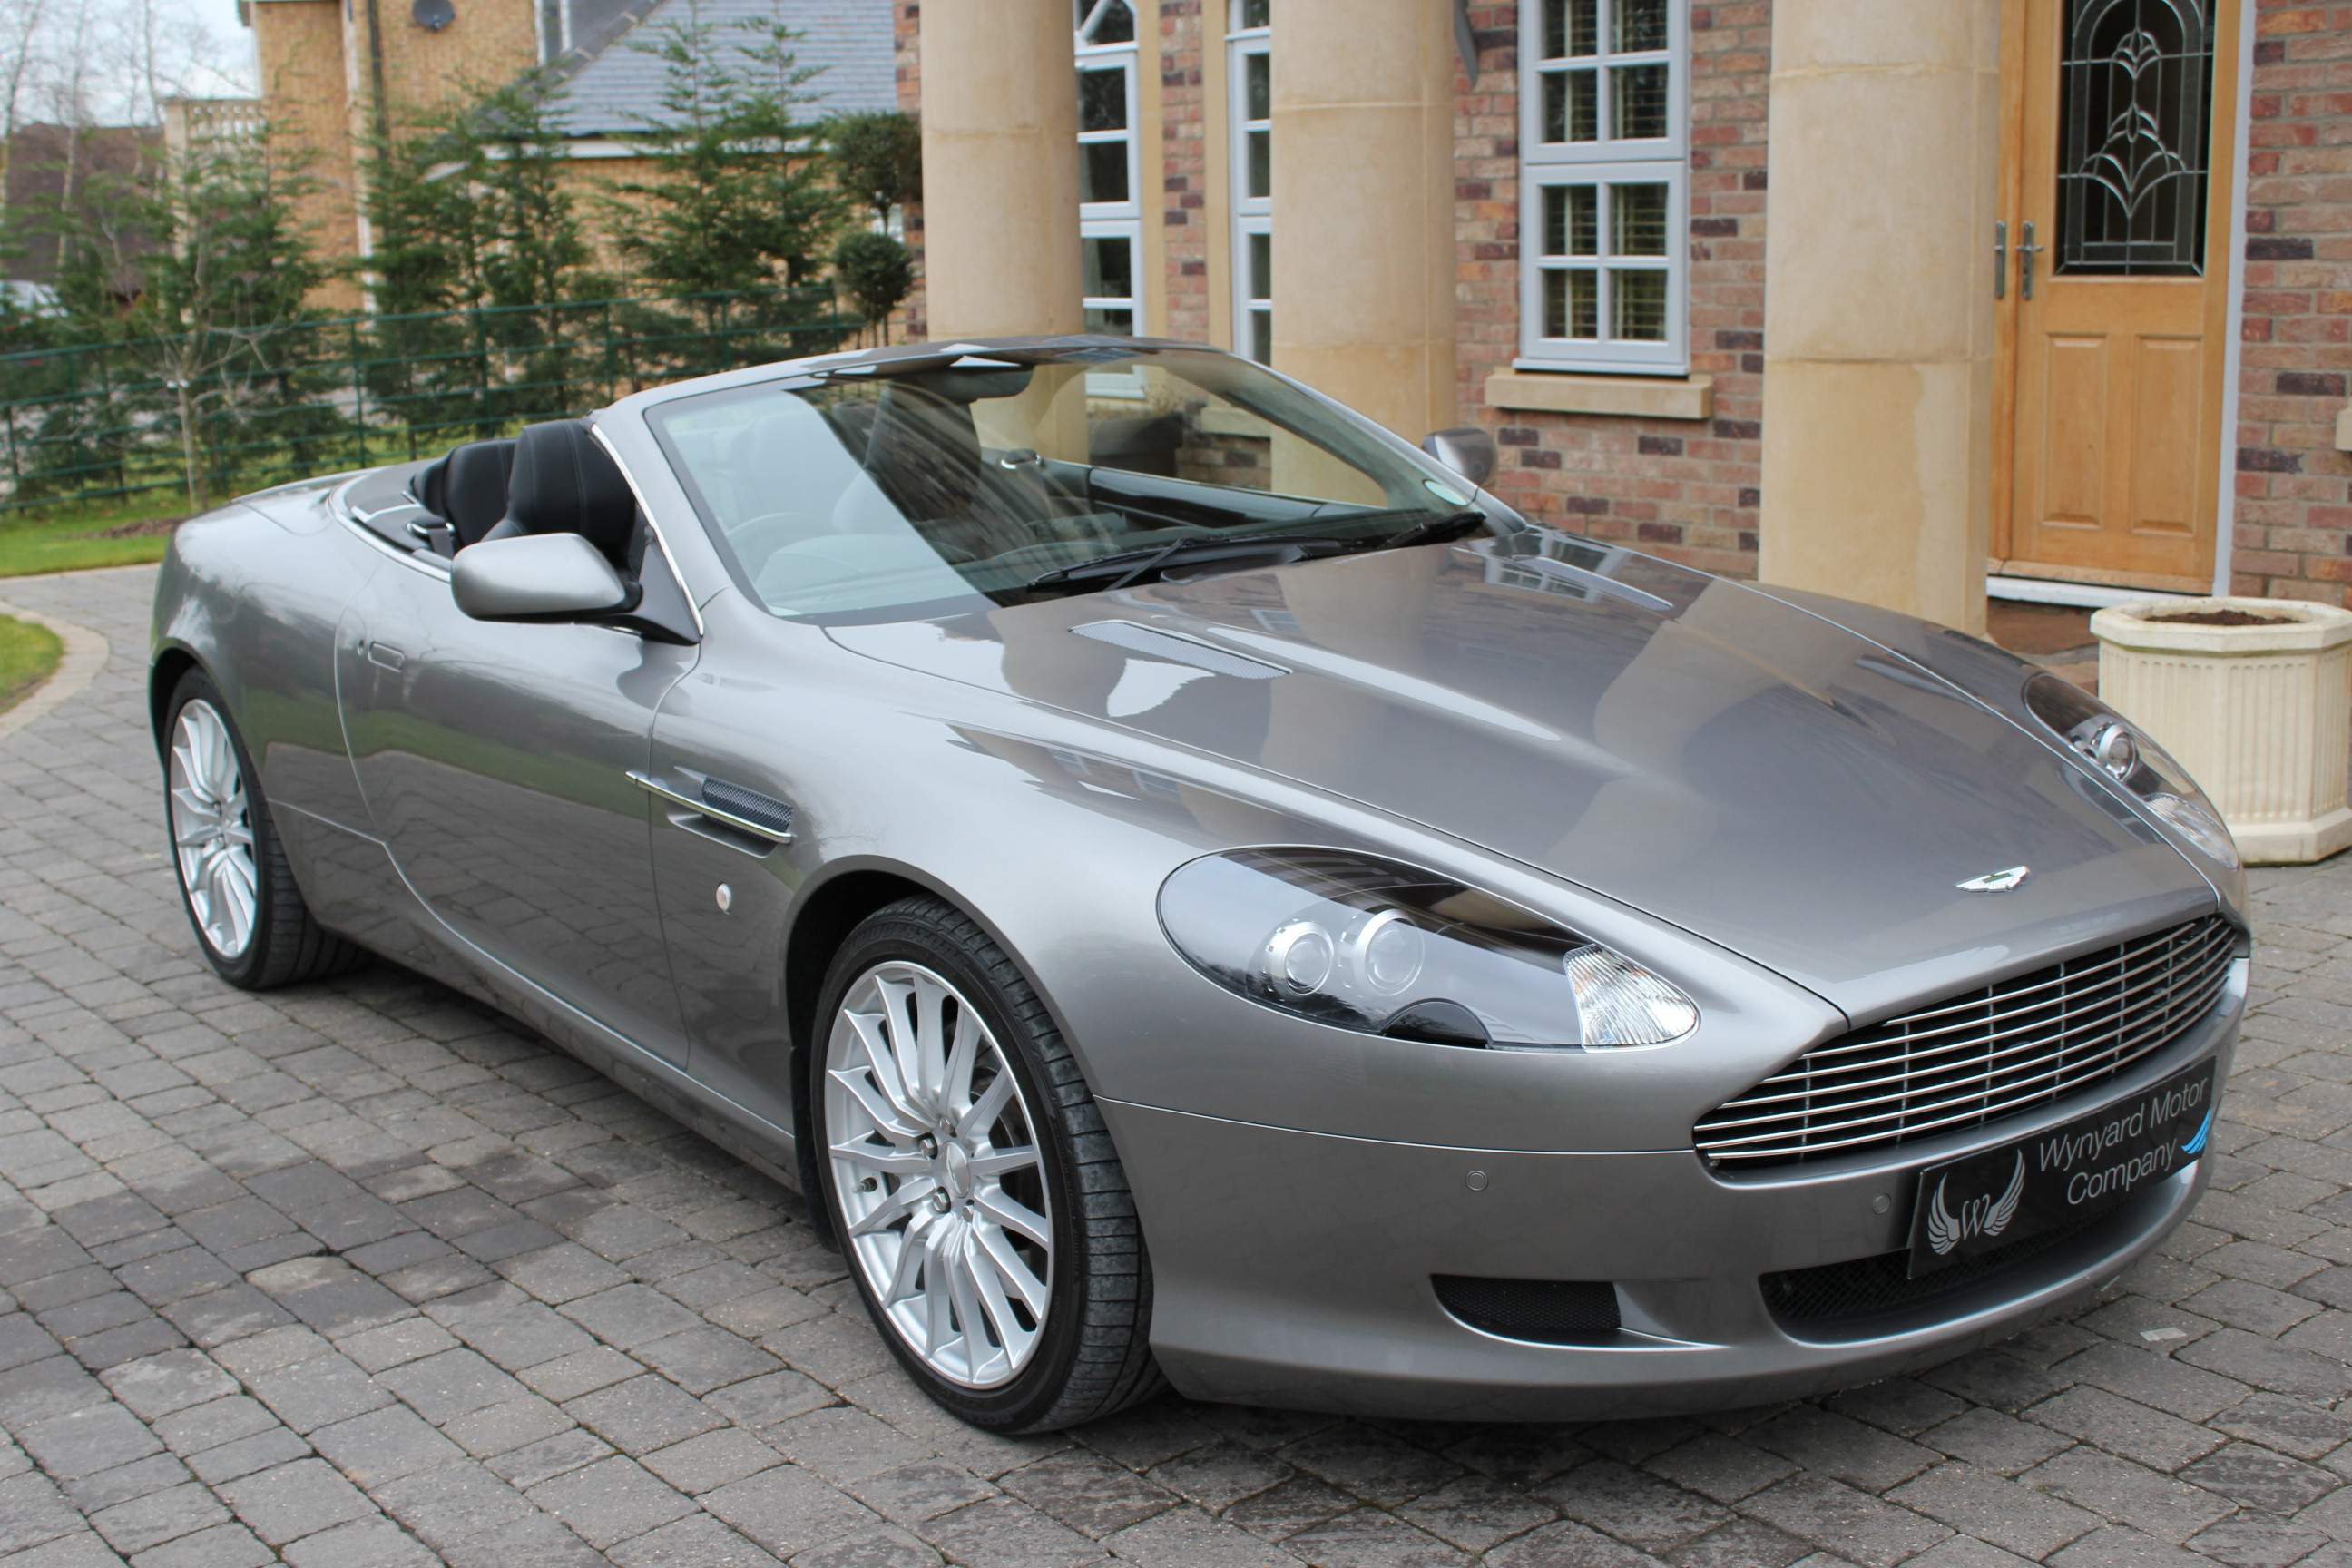 Aston Martin DB9 5.9 2008 photo - 11